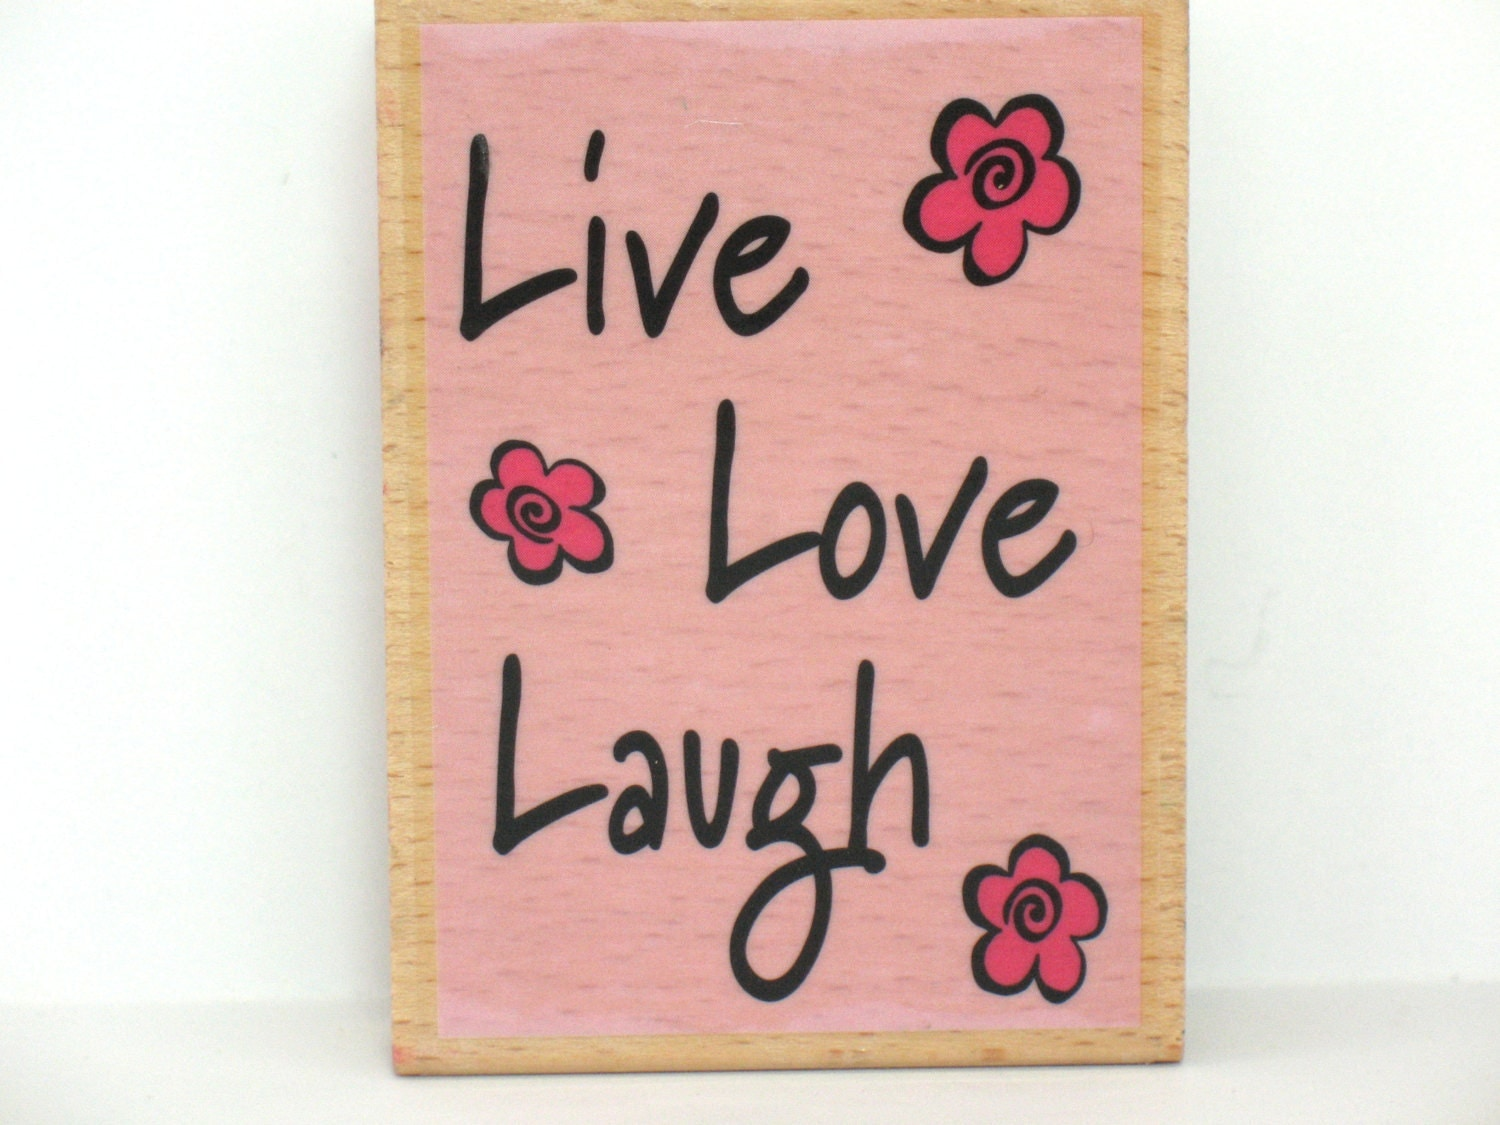 Quotes Rubber Stamp Live Love Laugh Rubber Stamp Craft Rubber Stamp Happy Scrapbooking Sold by FindingMaineVintage